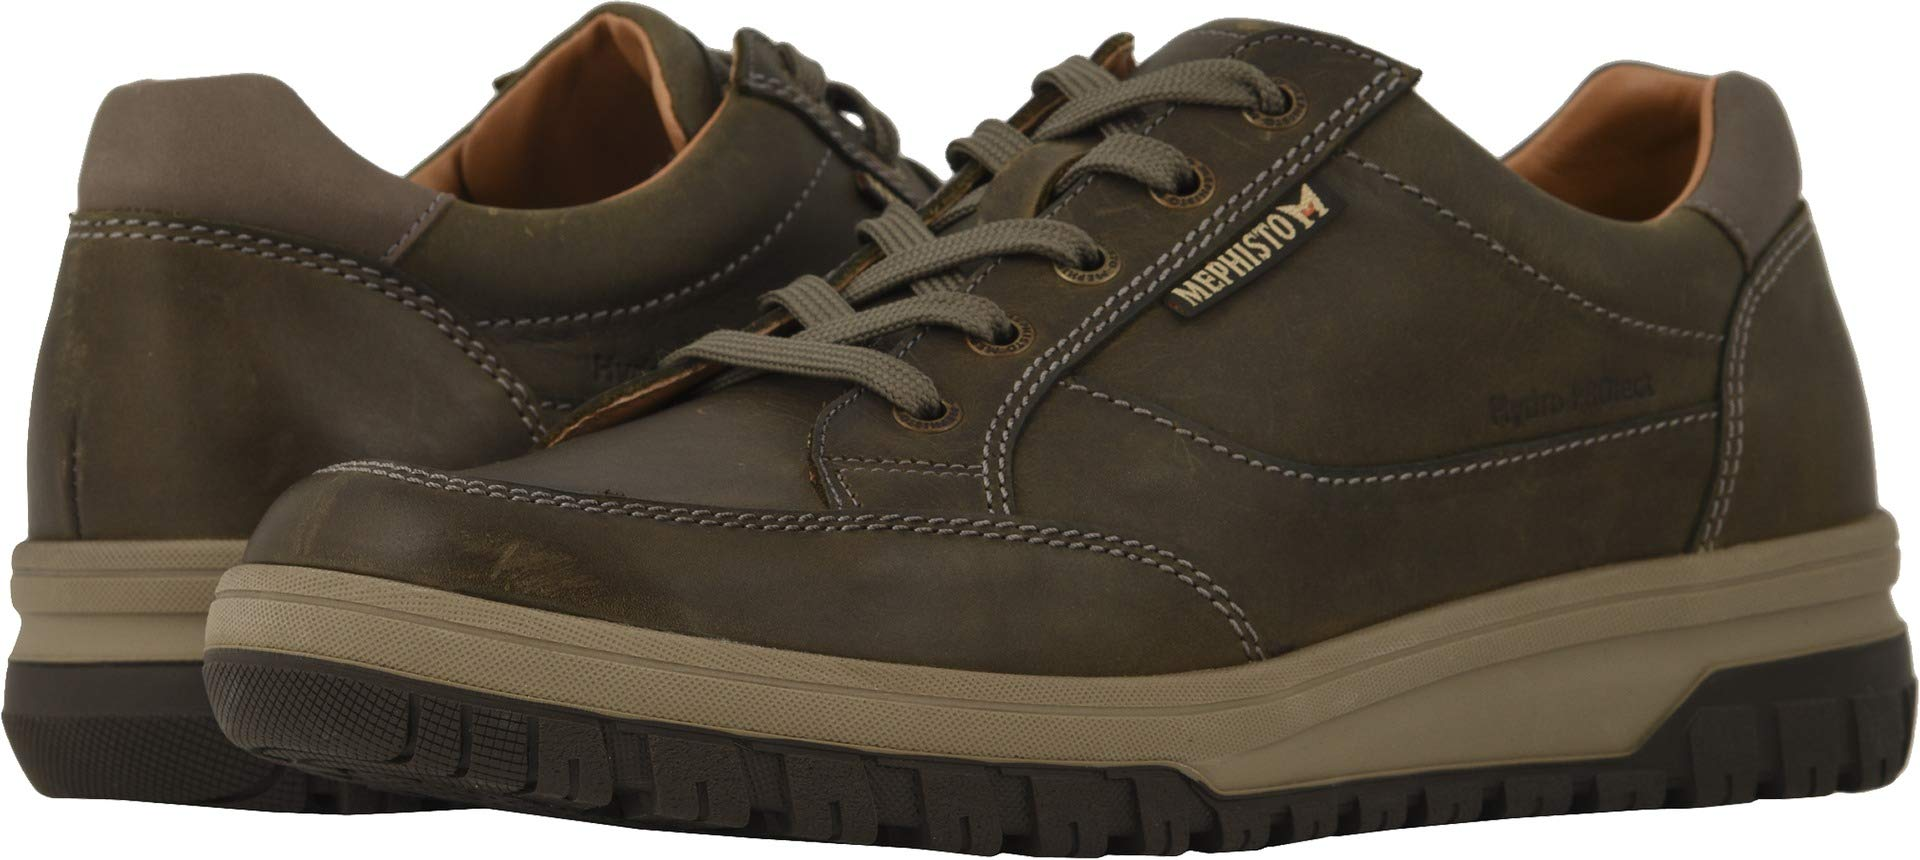 Mephisto Mens Loden Pewter Grizzly